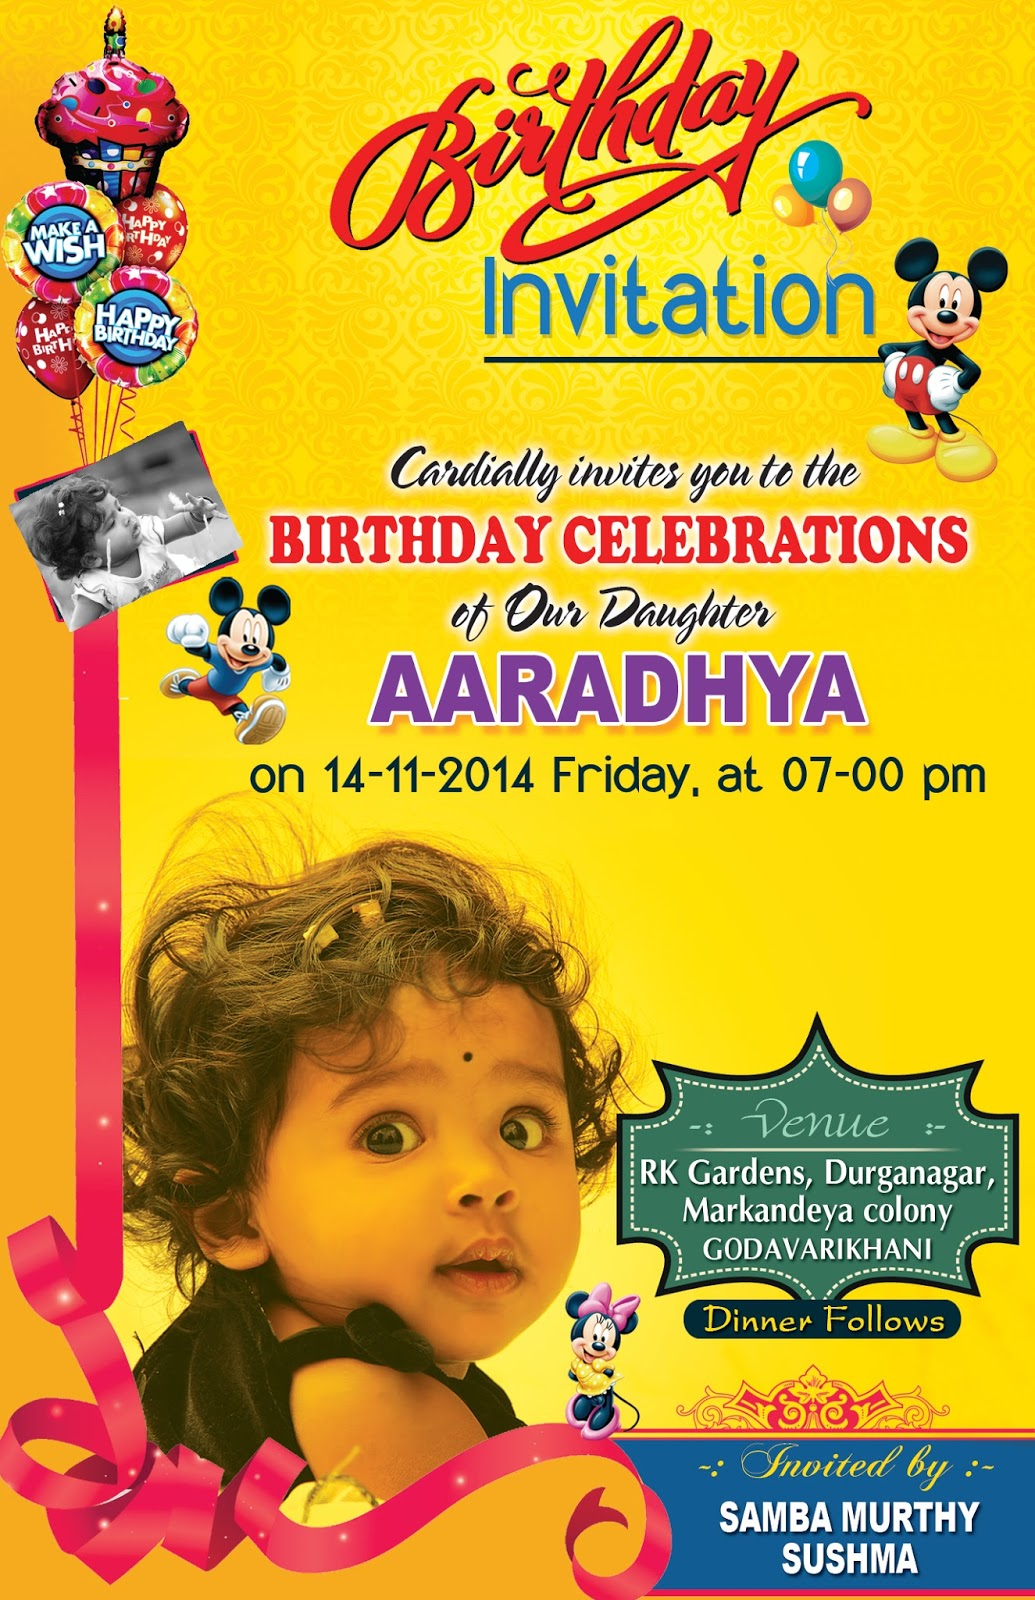 happy birthday invitation card design ; birthday-invitation-card-And-the-dekorativ-Birthday-and-great-ideas-8